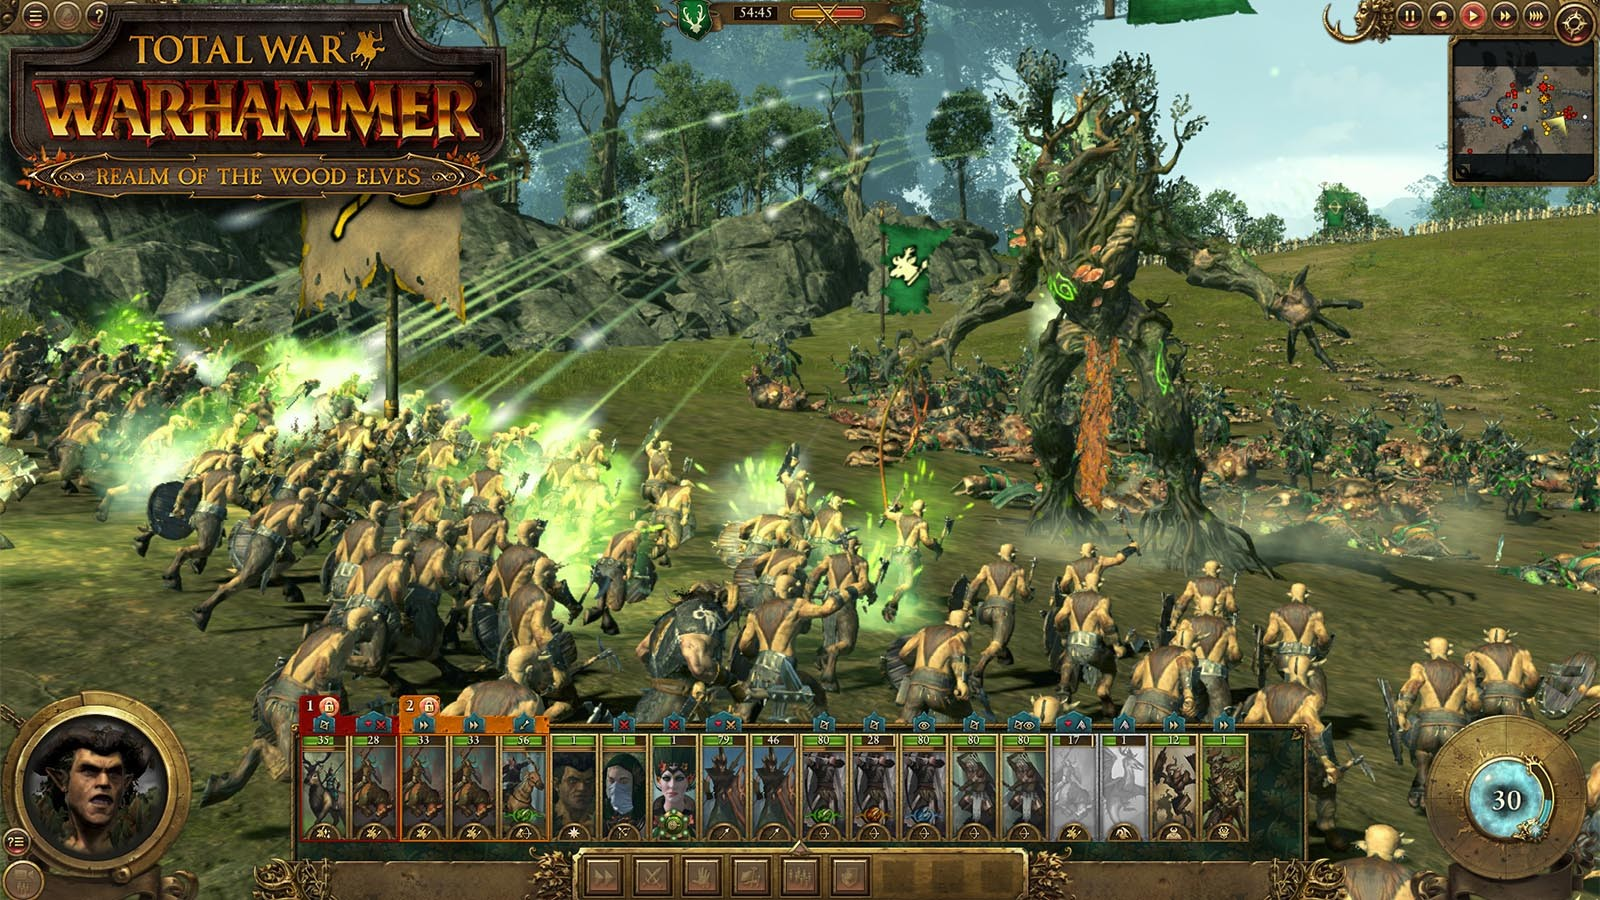 Total War: WARHAMMER - The King And The Warlord Crack